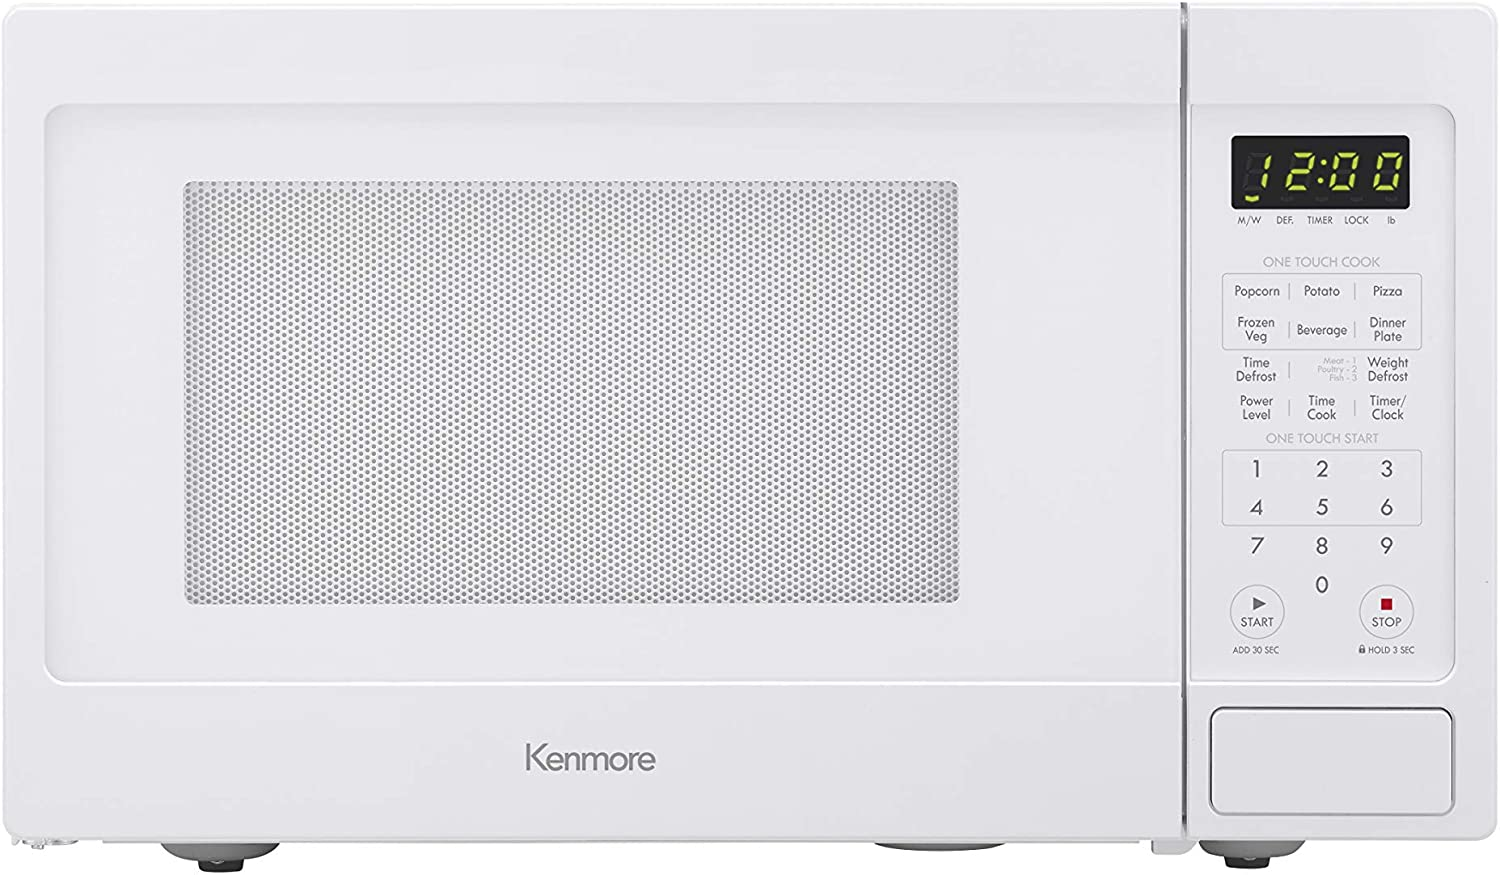 Kenmore 70922 0.9 cu. ft Small Compact 900 Watts 10 Power Settings, 12 Heating Presets, Removable Turntable, ADA Compliant Countertop Microwave, White